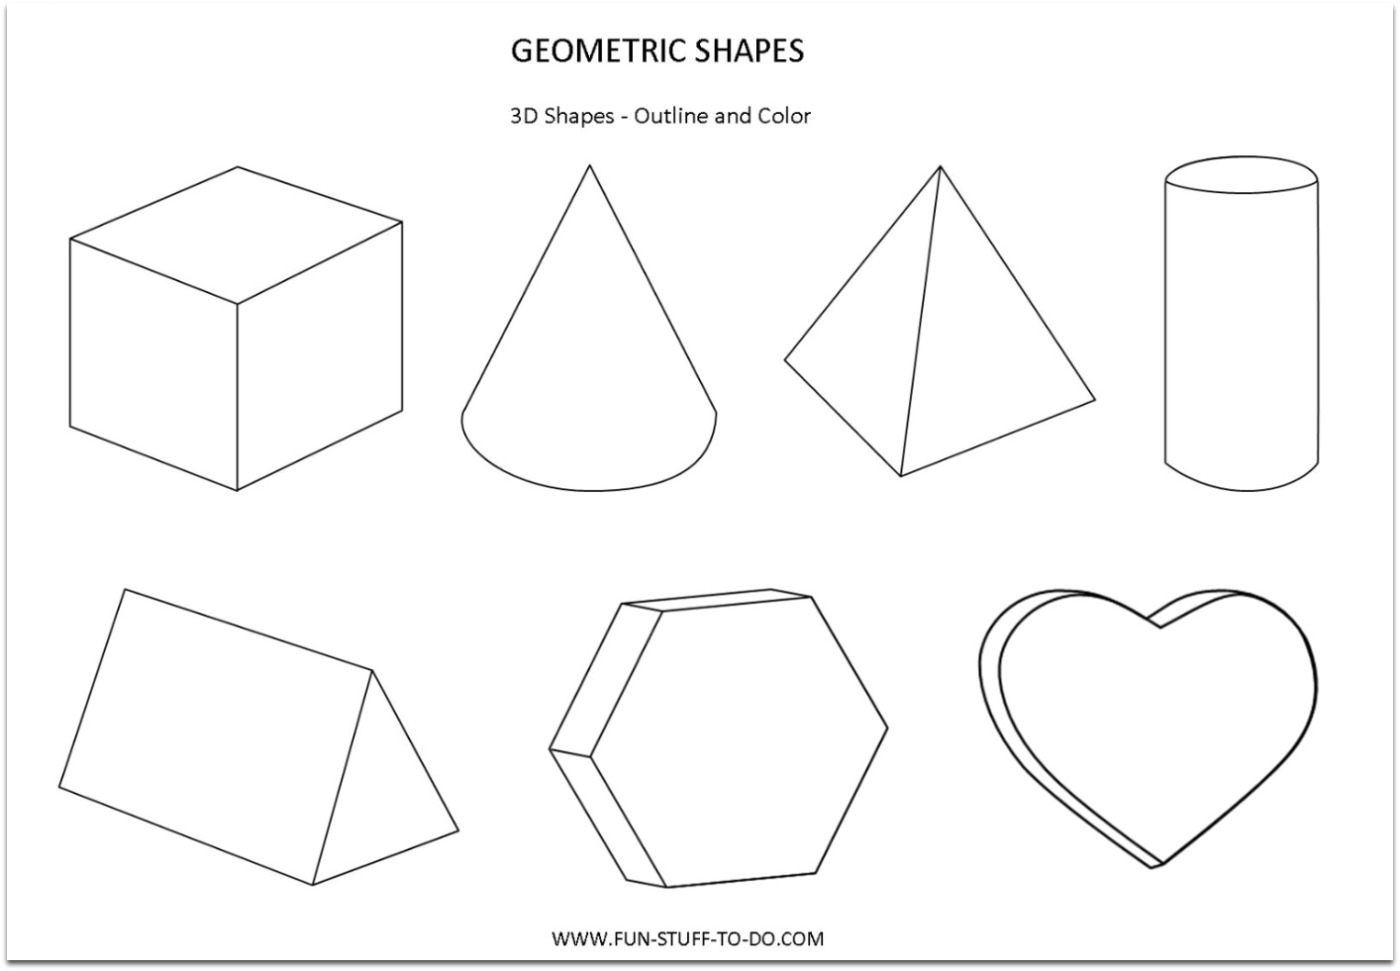 Geometric Shapes Worksheets – Geometric Shapes Worksheets for Kindergarten